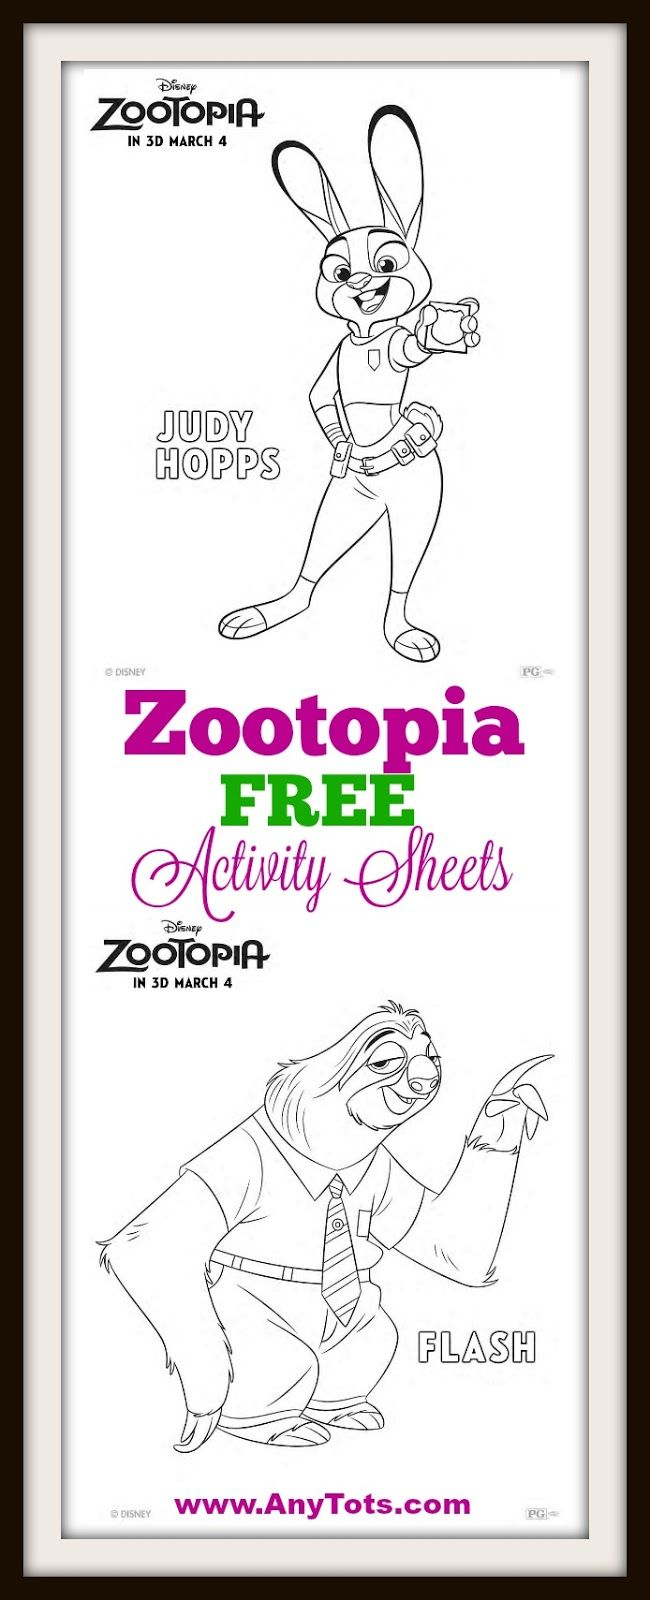 Disney Zootopia Free Coloring Sheets And Matching Game You Can Use This Printable